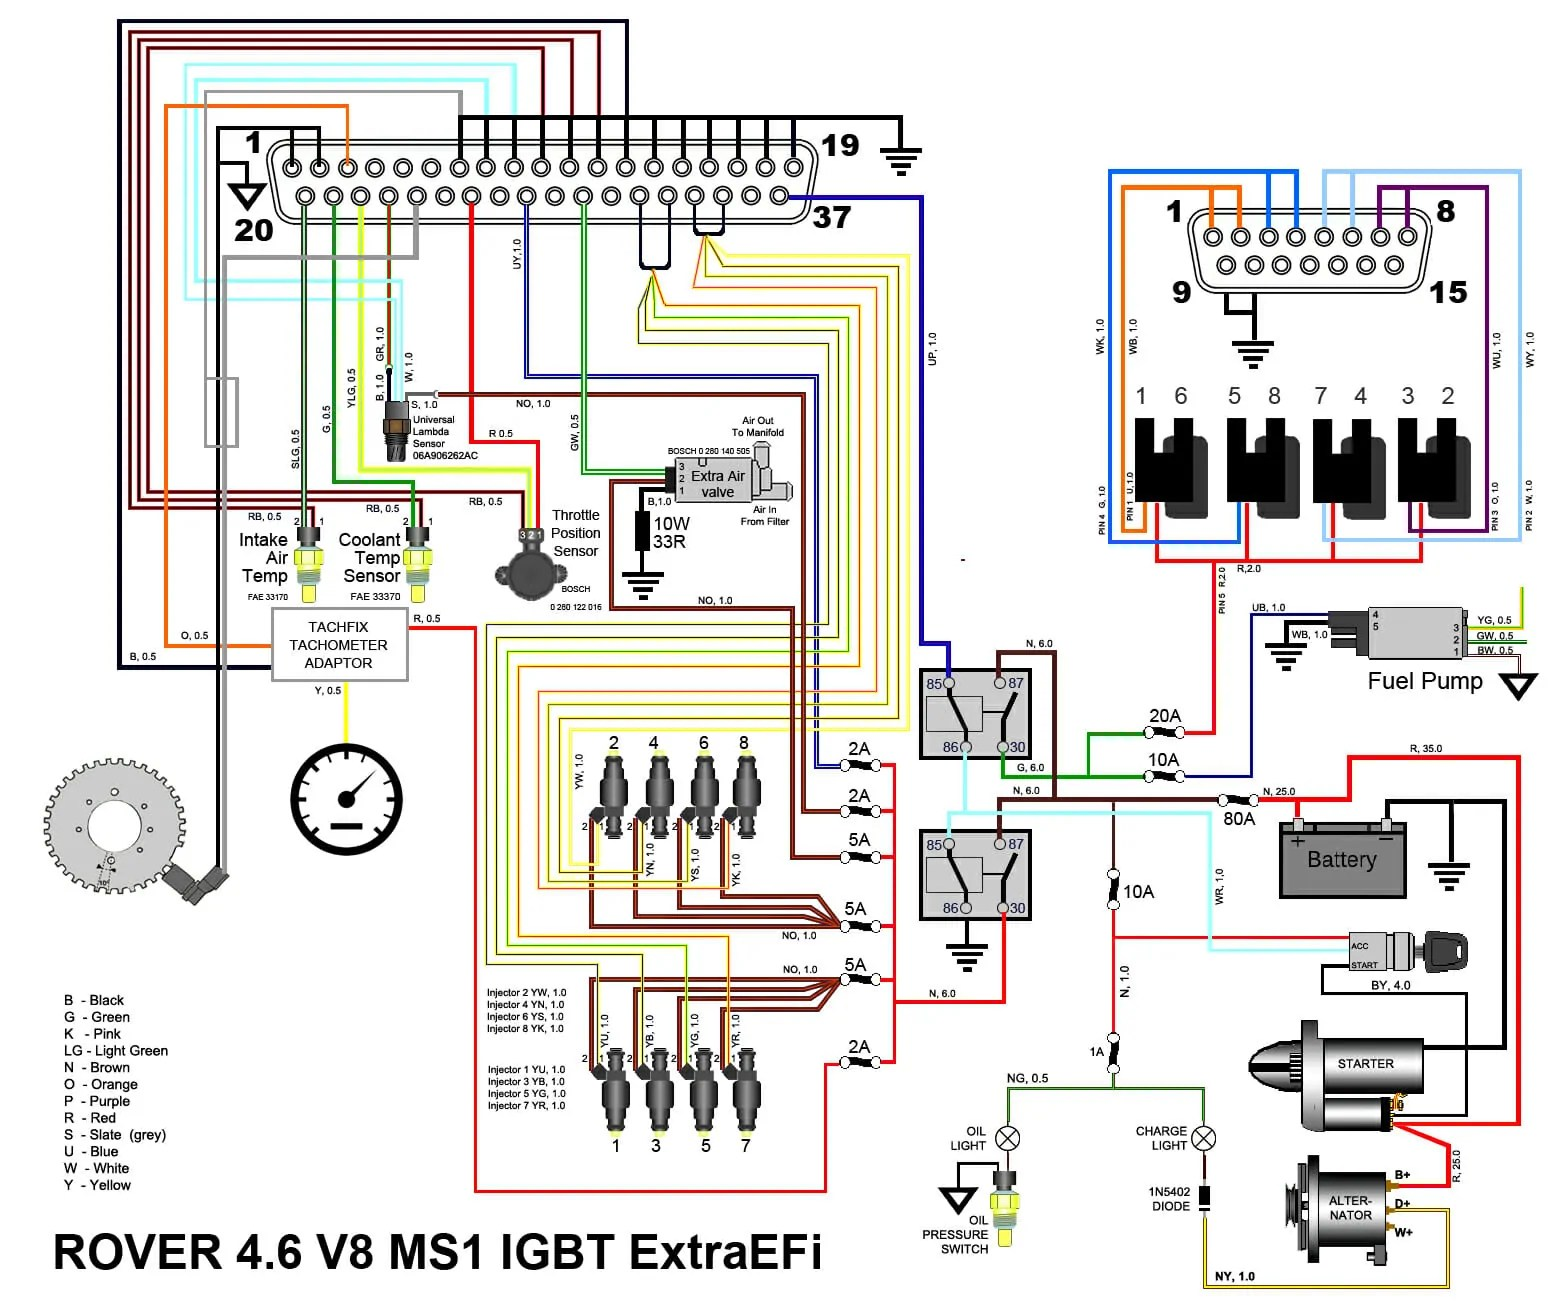 rover v8 megasquirt ms1 wiring diagram?w=500 discovery engine diagram range rover engine diagram wiring library